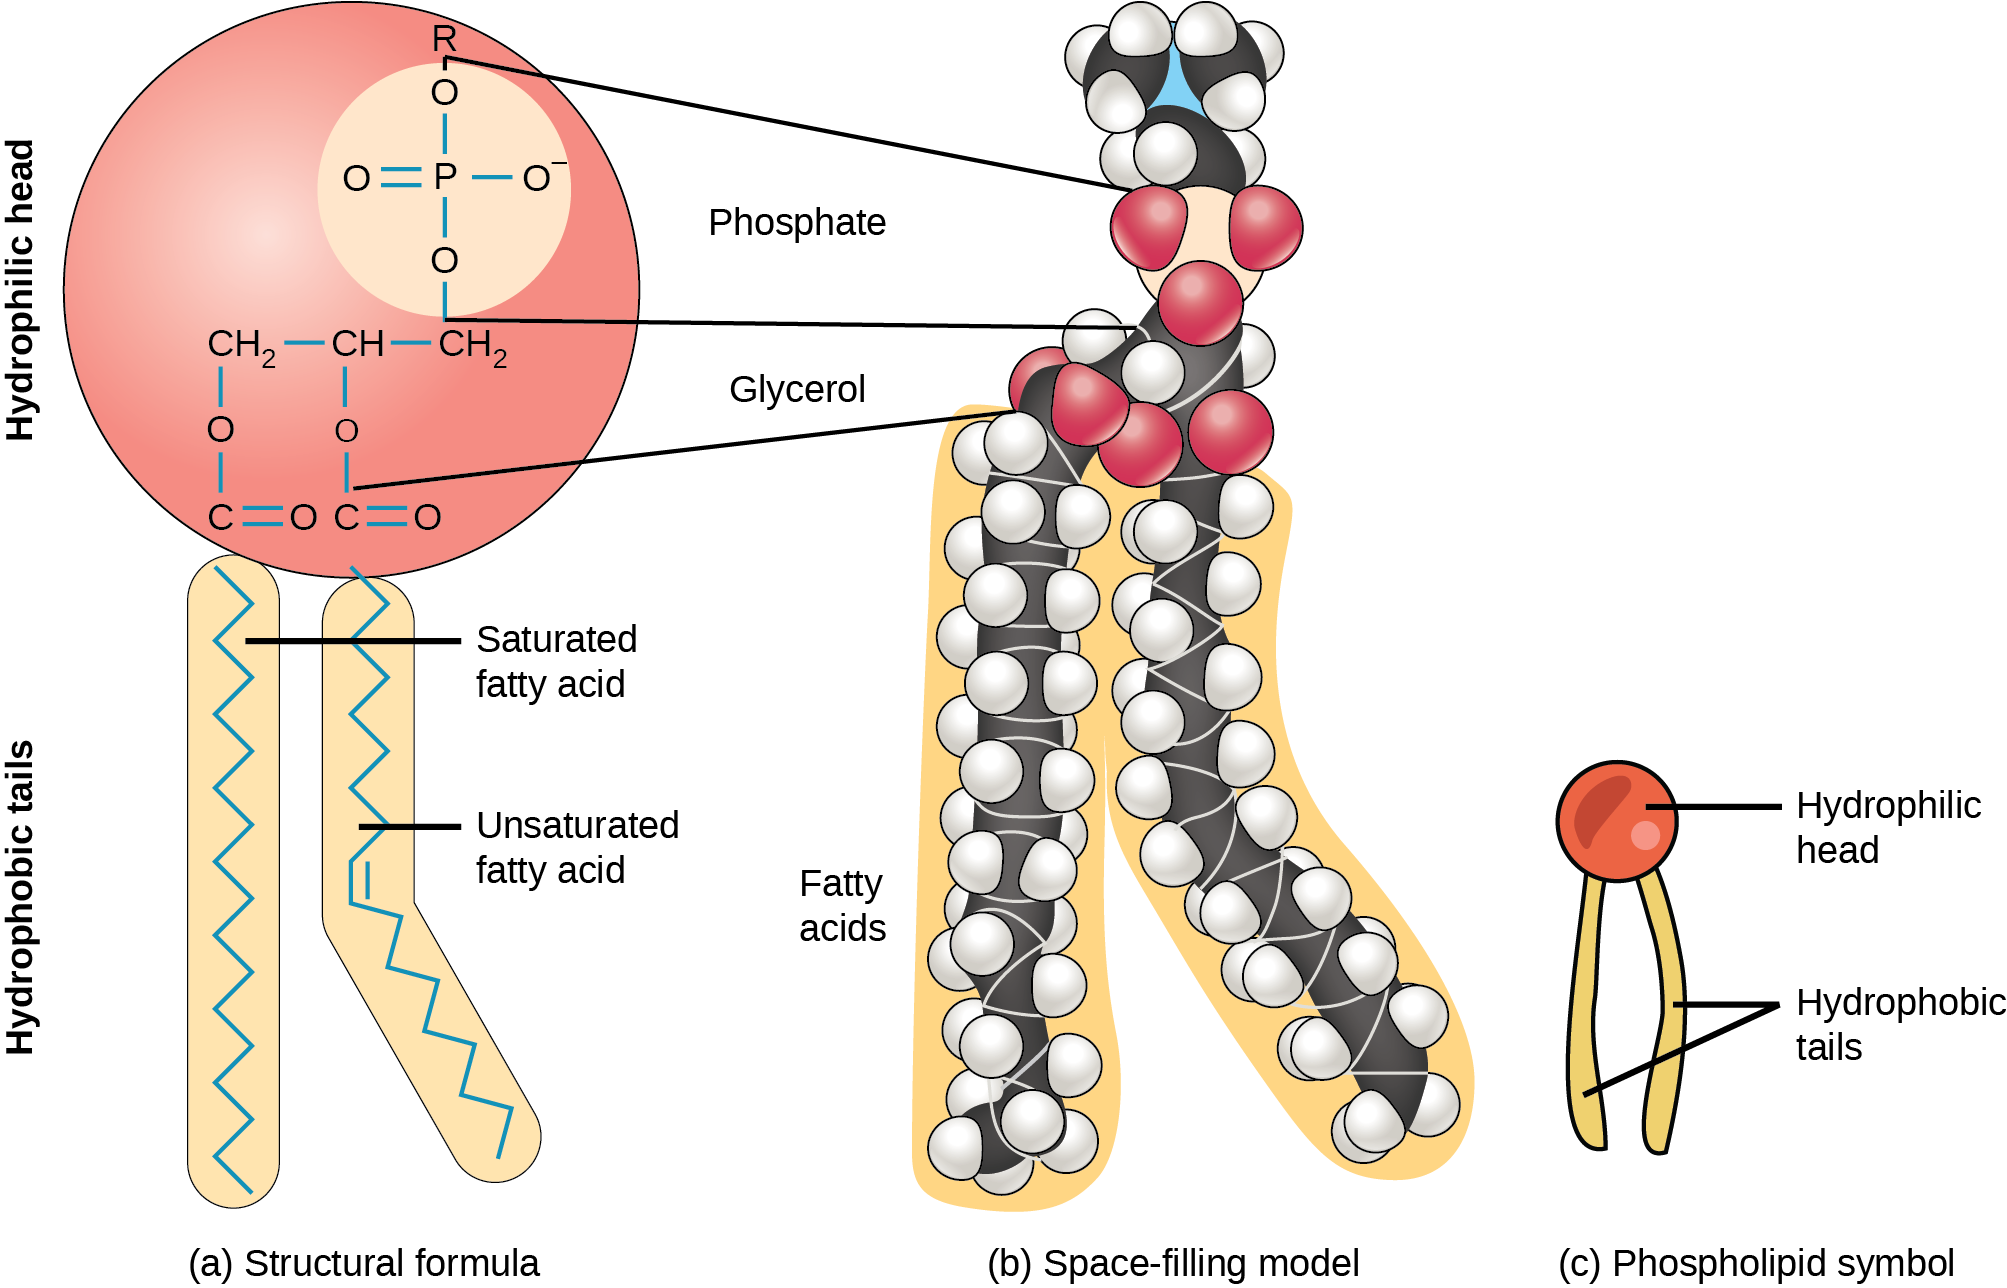 The molecular structure of a phospholipid is shown. It consists of two fatty acids attached to the first and second carbons in glycerol, and a phosphate group attached to the third position. The phosphate group may be further modified by addition of another molecule to one of its oxygens. Two molecules that may modify the phosphate group, choline and serine, are shown. Choline consists of a two-carbon chain with a hydroxy group attached to one end and a nitrogen attached to the other. The nitrogen, in turn, has three methyl groups attached to it and has a charge of plus one. Serine consists of a two-carbon chain with a hydroxyl group attached to one end. An amino group and a carboxyl group are attached to the other end.